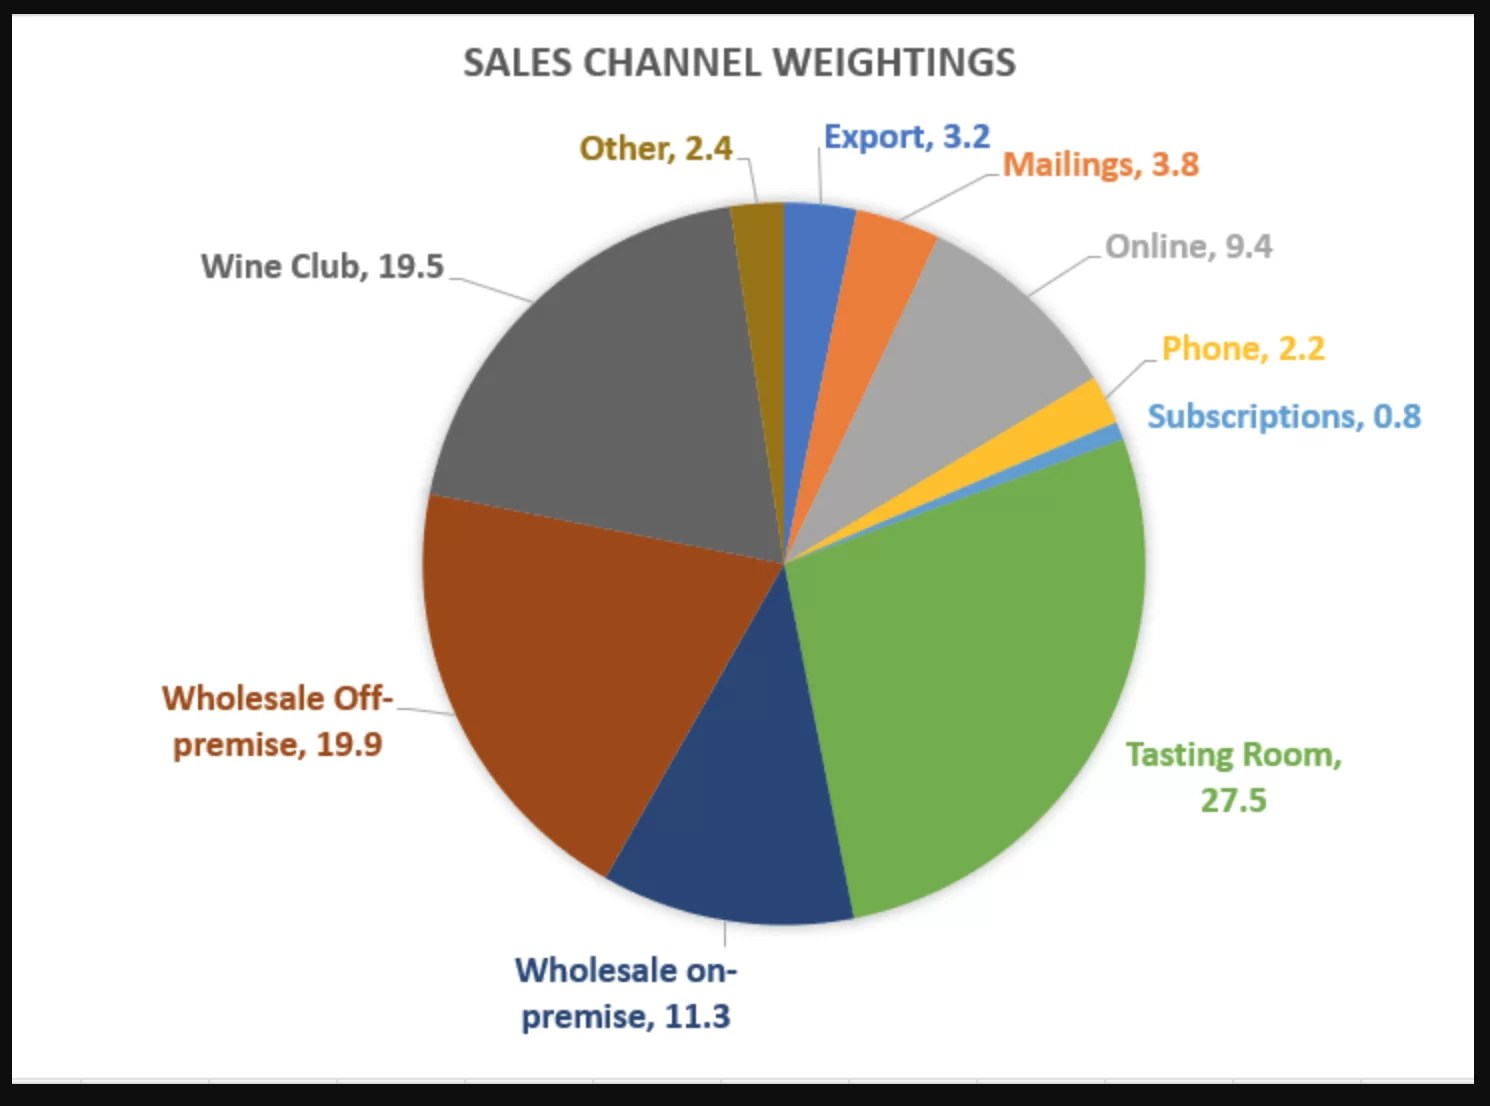 Sales Channel Weighting Chart